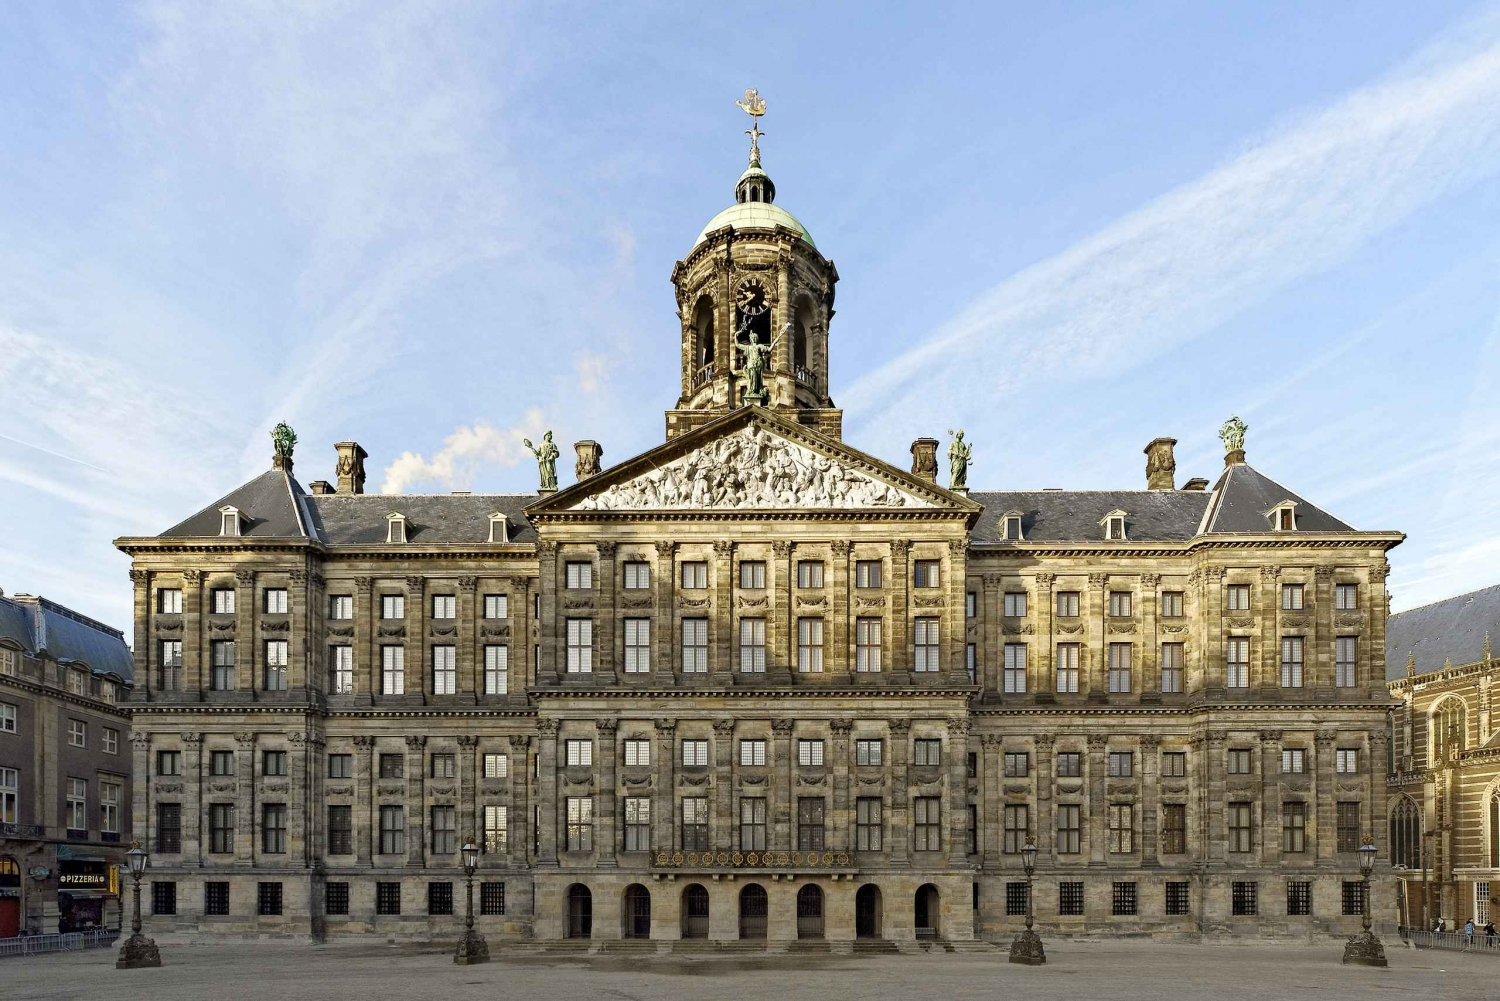 Skip the Line Ticket & Audio Guide: Amsterdam Royal Palace